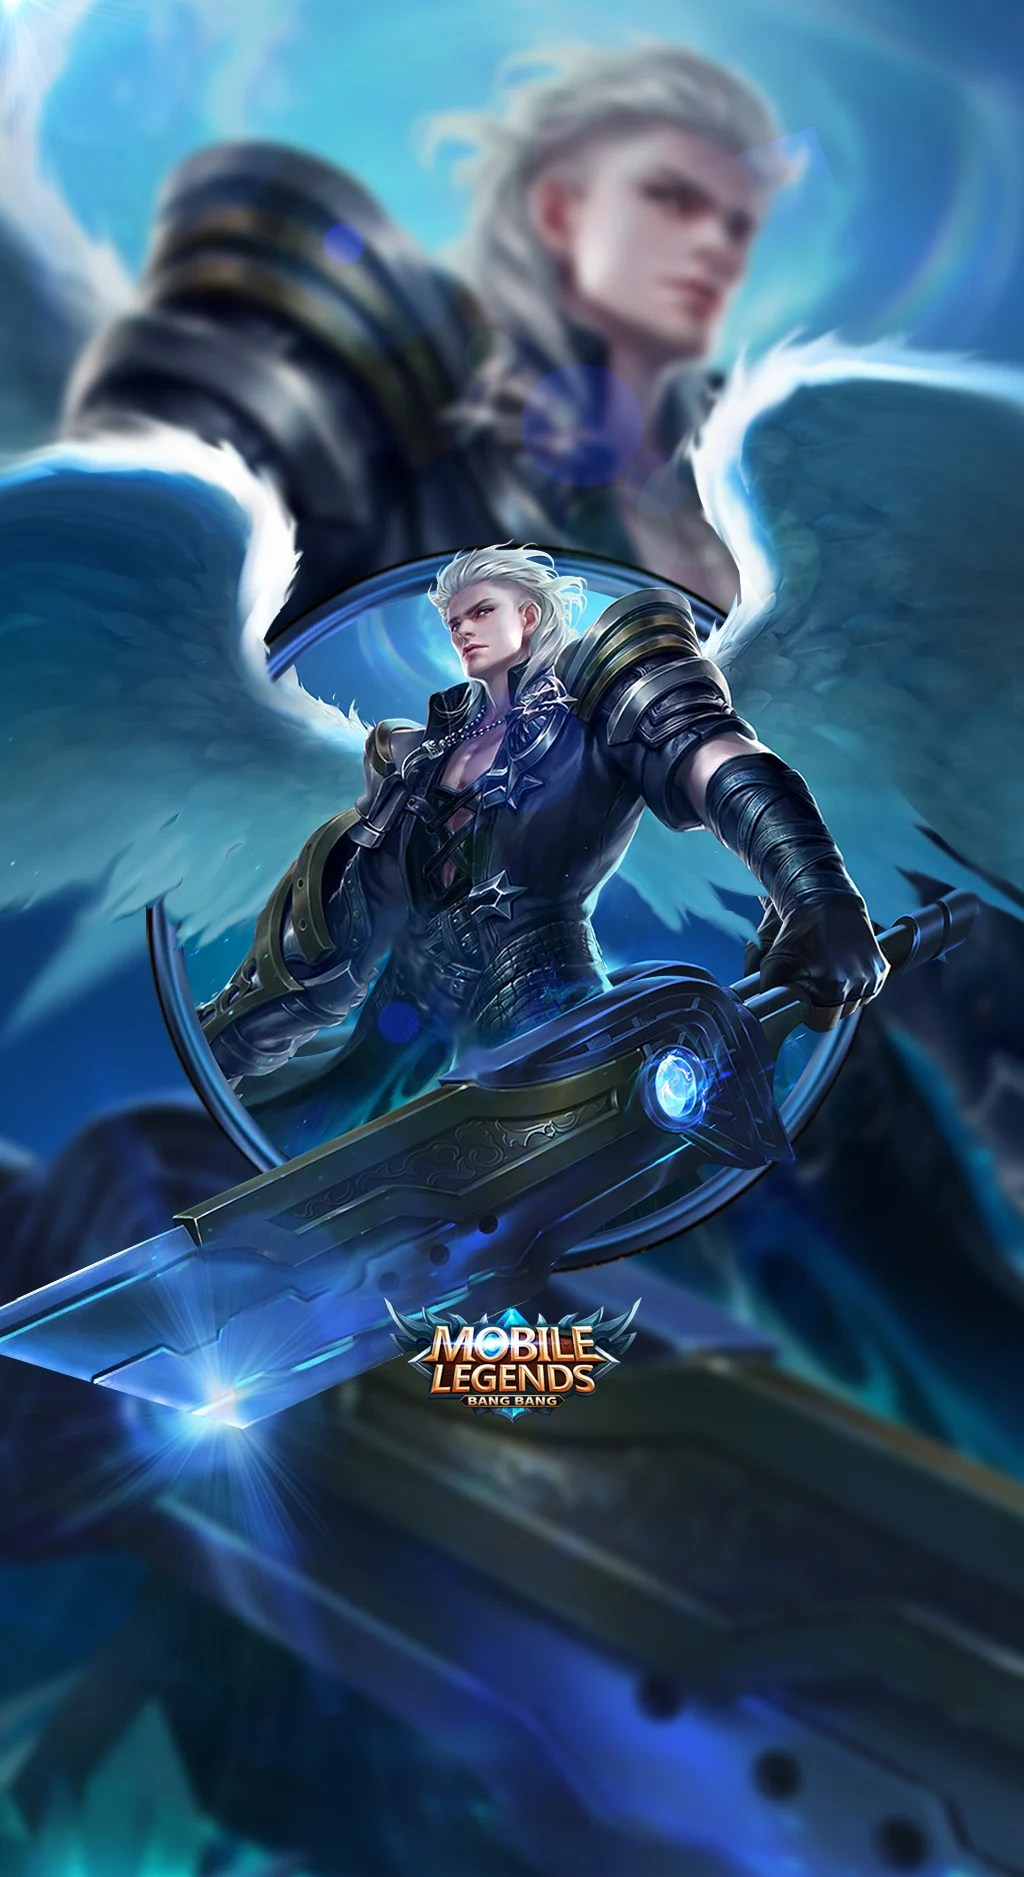 Alucard Mobile Legends Child Of The Fall Wallpaper 260 Wallpaper Mobile Legends Hd Terbaru 2018 Terlengkap